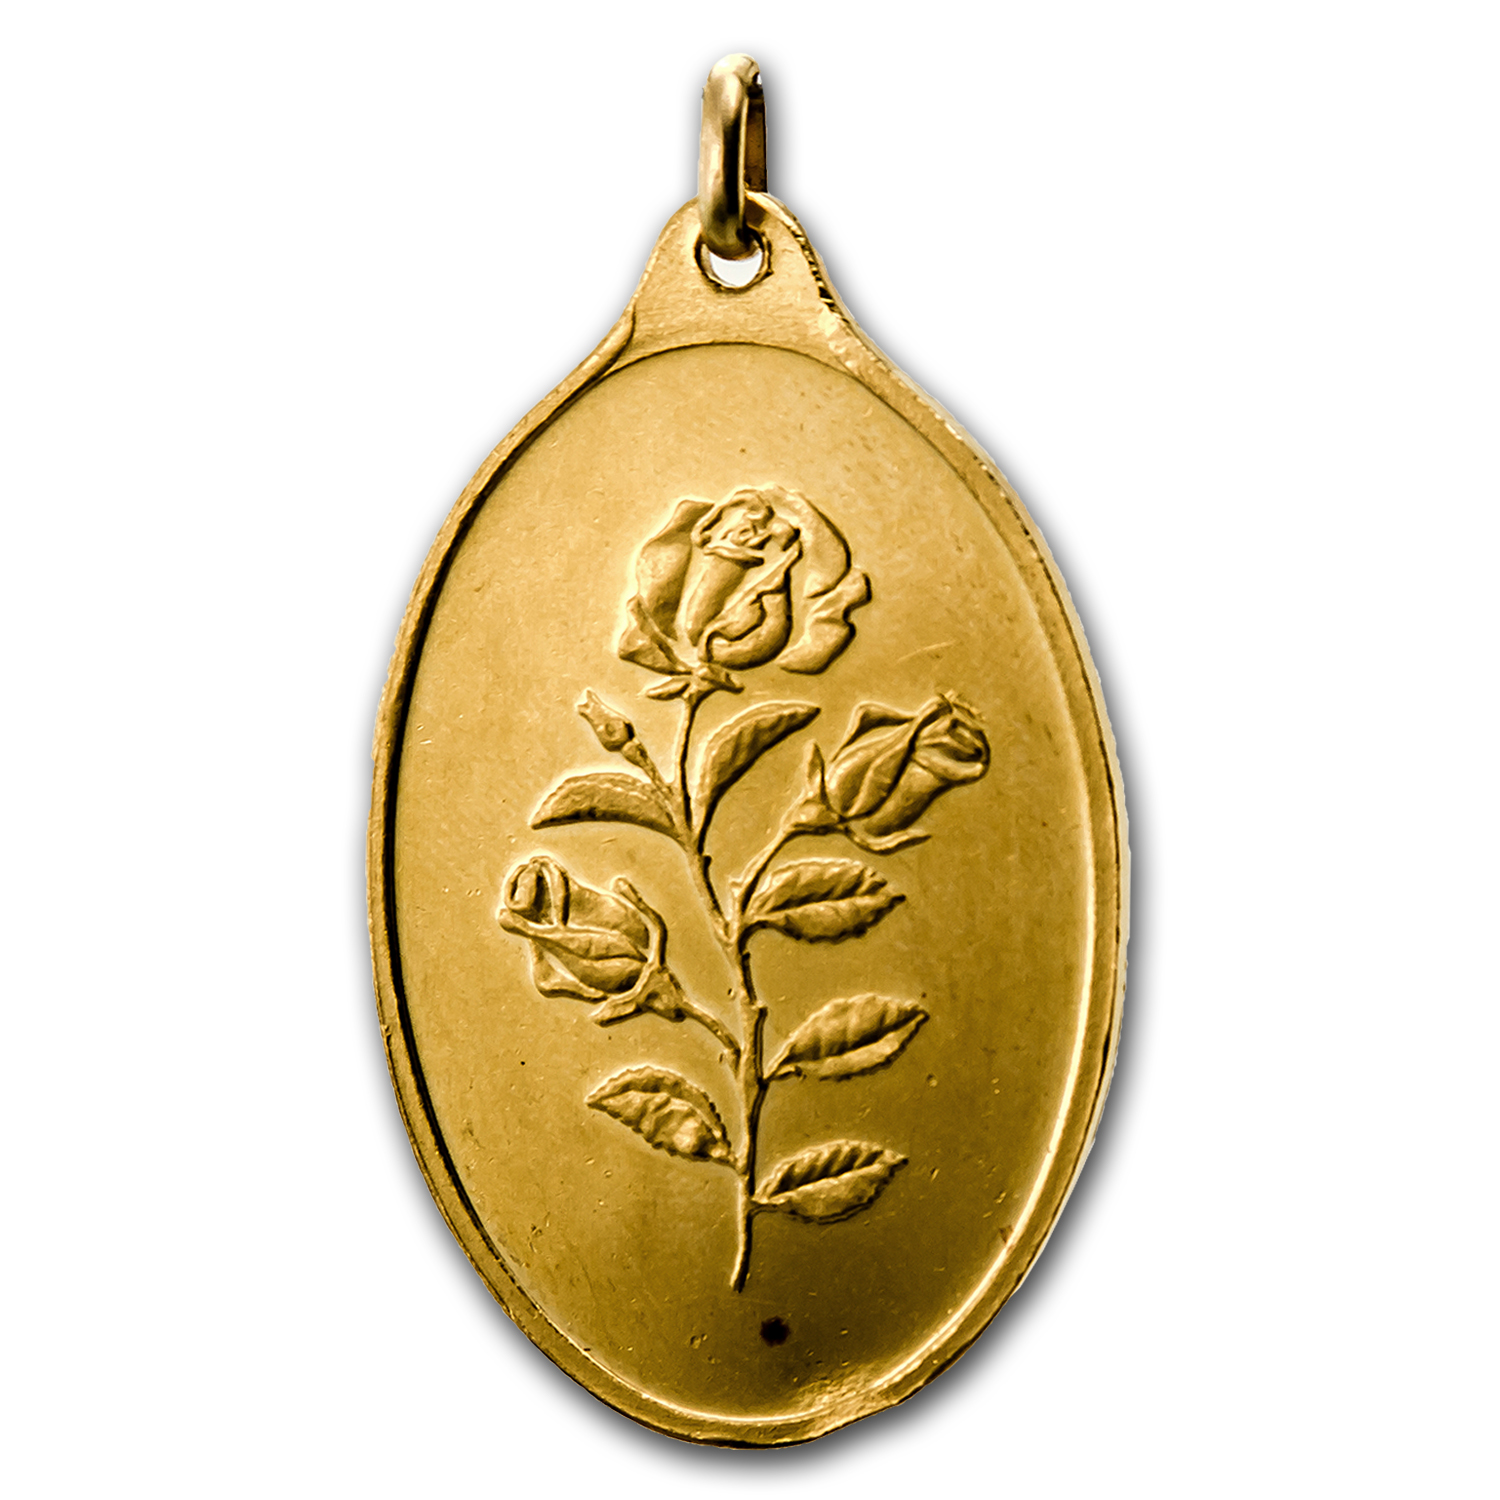 1 oz Gold Pendant - Pamp Suisse (Rose, Oval, Scruffy)